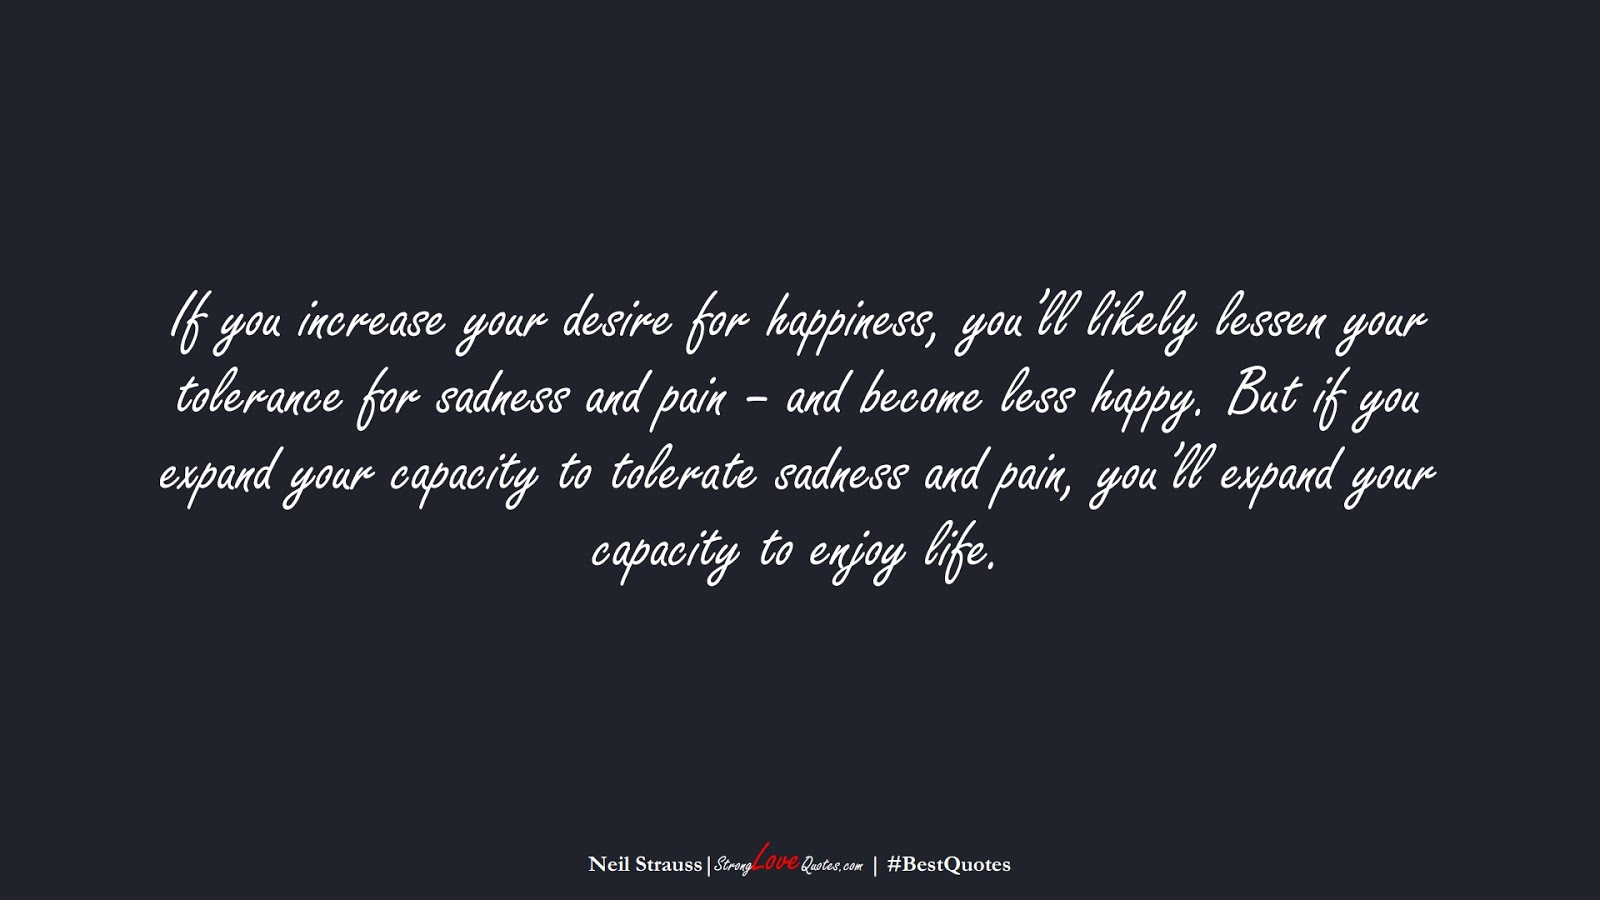 If you increase your desire for happiness, you'll likely lessen your tolerance for sadness and pain – and become less happy. But if you expand your capacity to tolerate sadness and pain, you'll expand your capacity to enjoy life. (Neil Strauss);  #BestQuotes